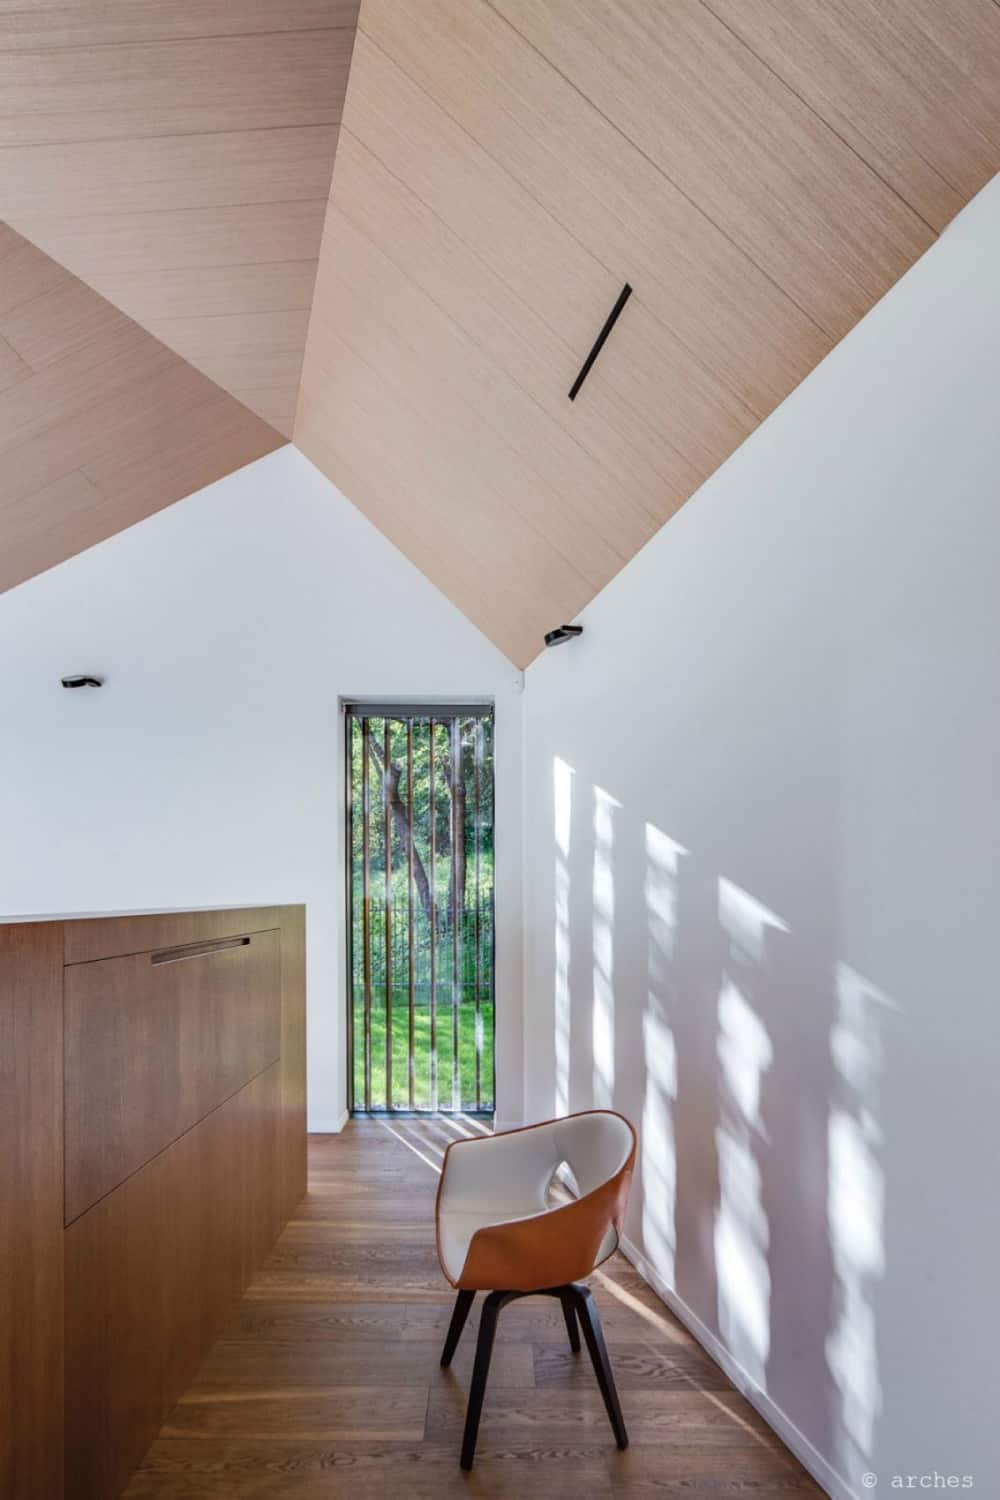 High windows allow natural illumination during the day